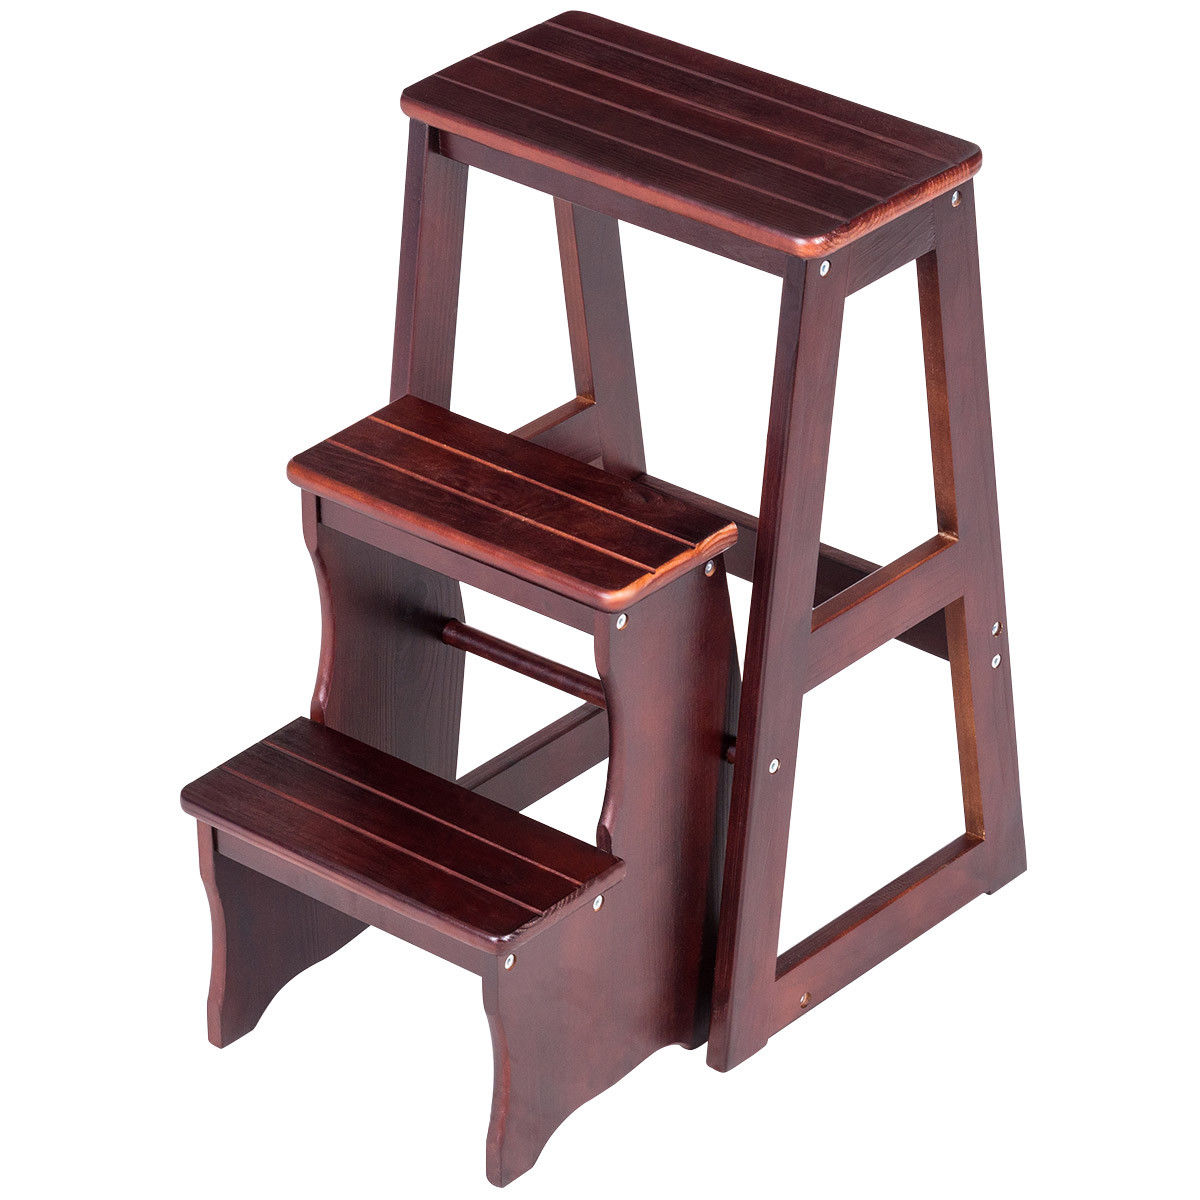 Gymax 3 Tier Folding Wood Step Stool Ladder Chair Bench